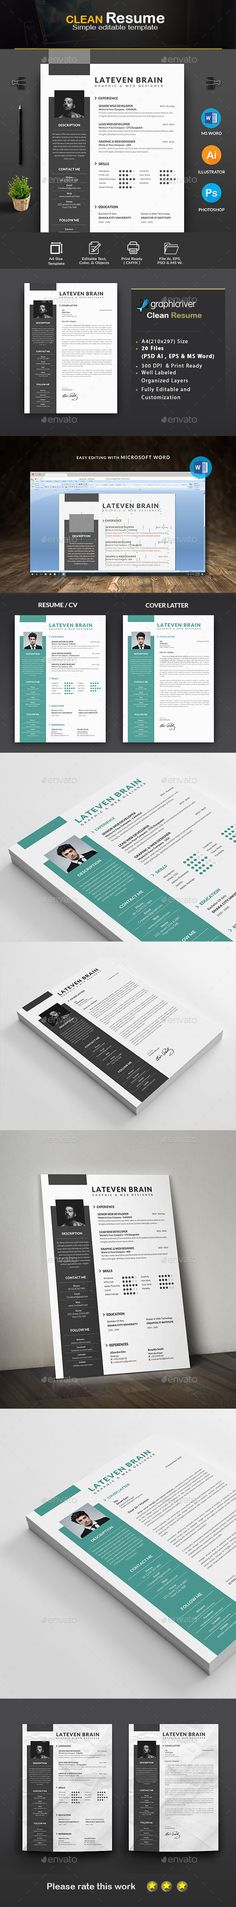 Resume - Resumes Stationery Download here: https://graphicriver.net/item/resume/19822278?ref=classicdesignp